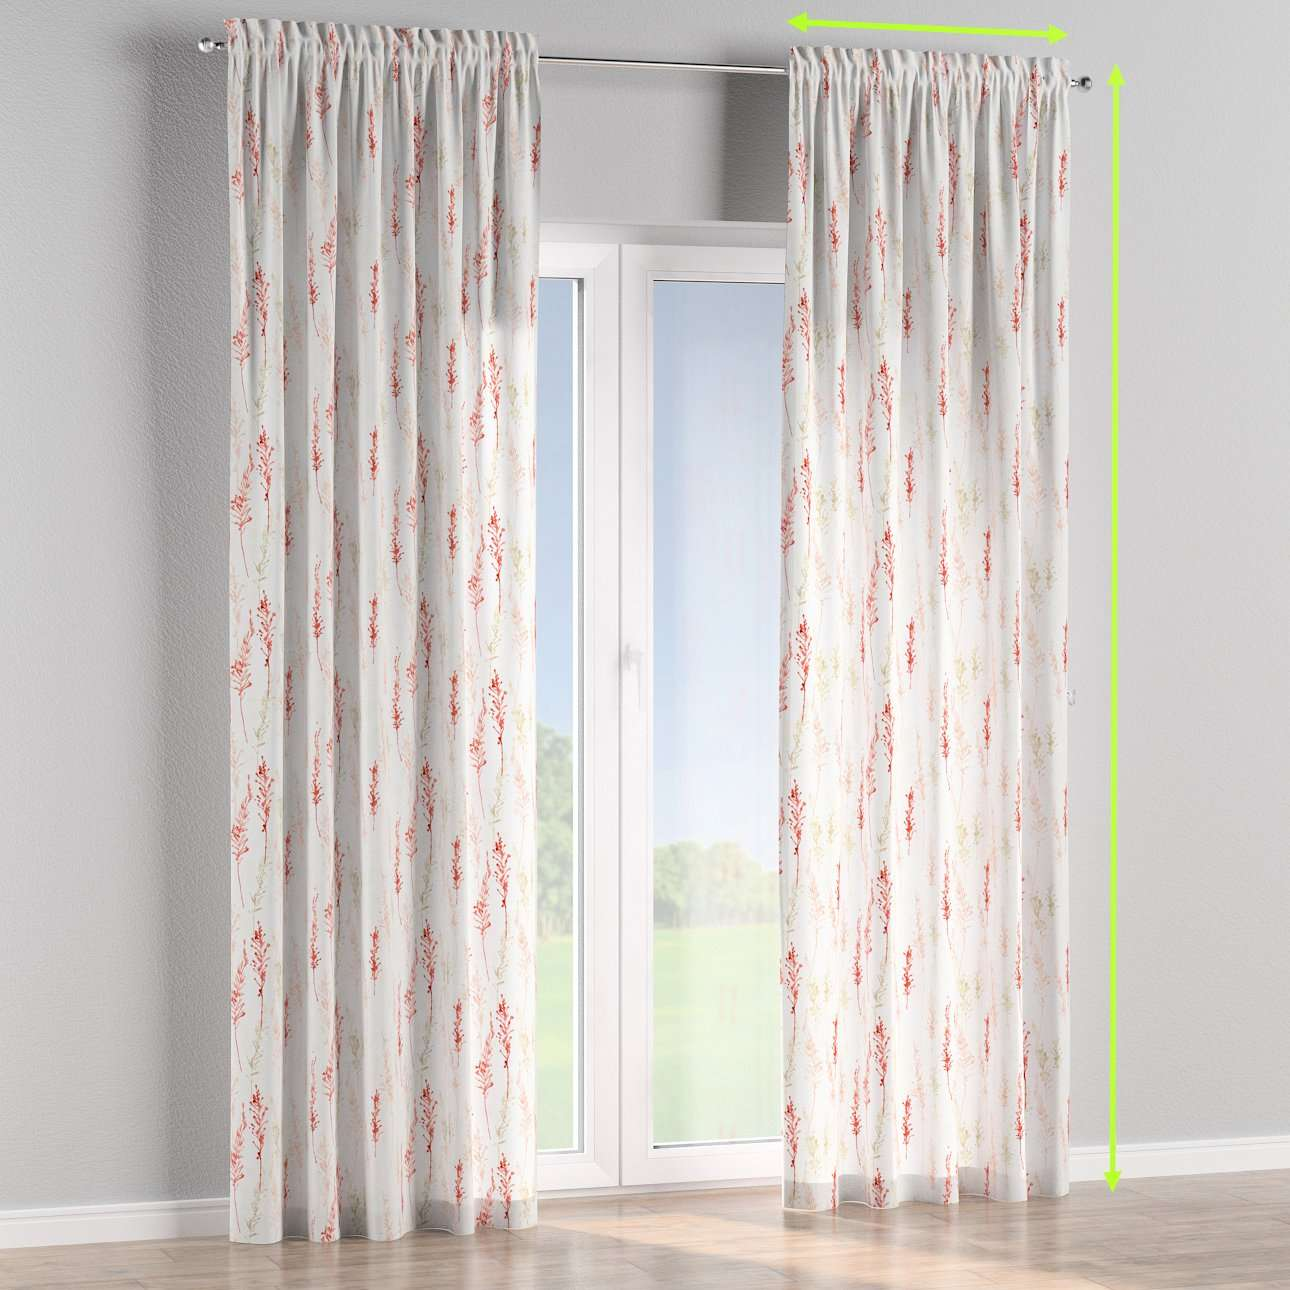 Slot and frill lined curtains in collection Acapulco, fabric: 141-37